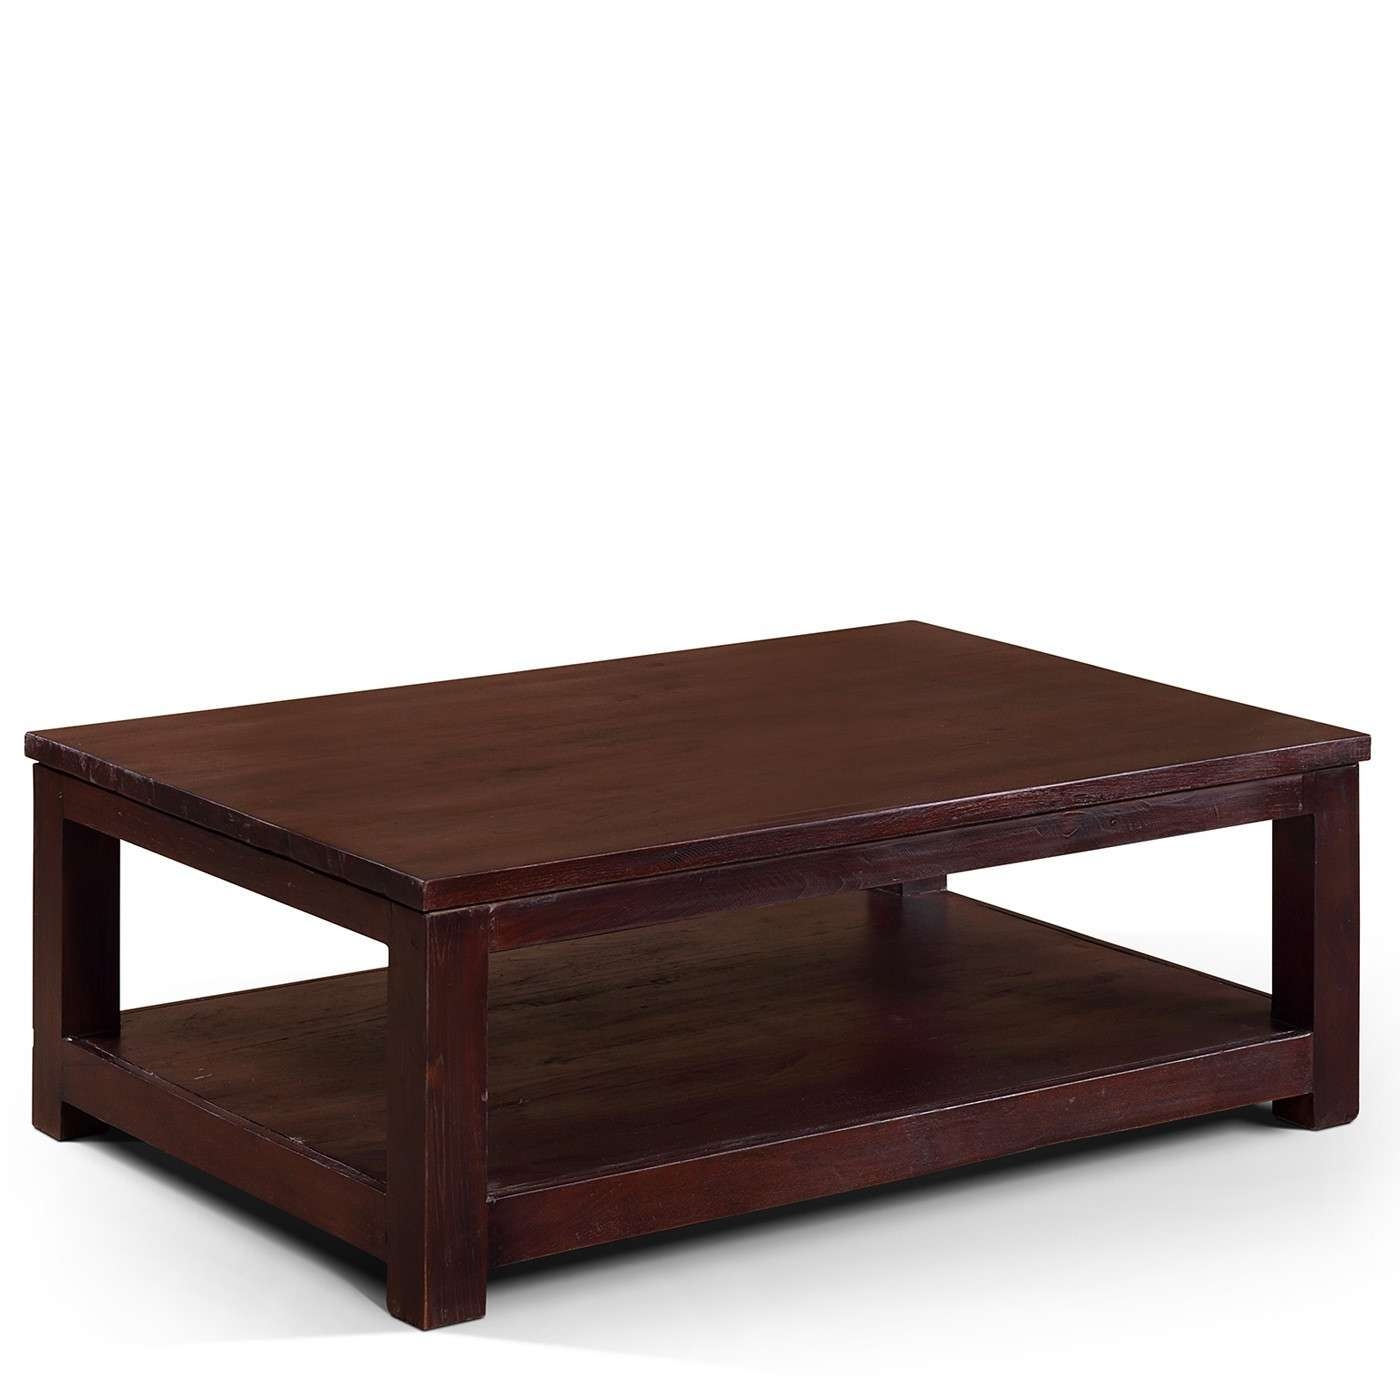 Rectangle Antique Solid Wood Dark Brown Coffee Table Designs Ideas Inside Trendy Dark Brown Coffee Tables (View 17 of 20)